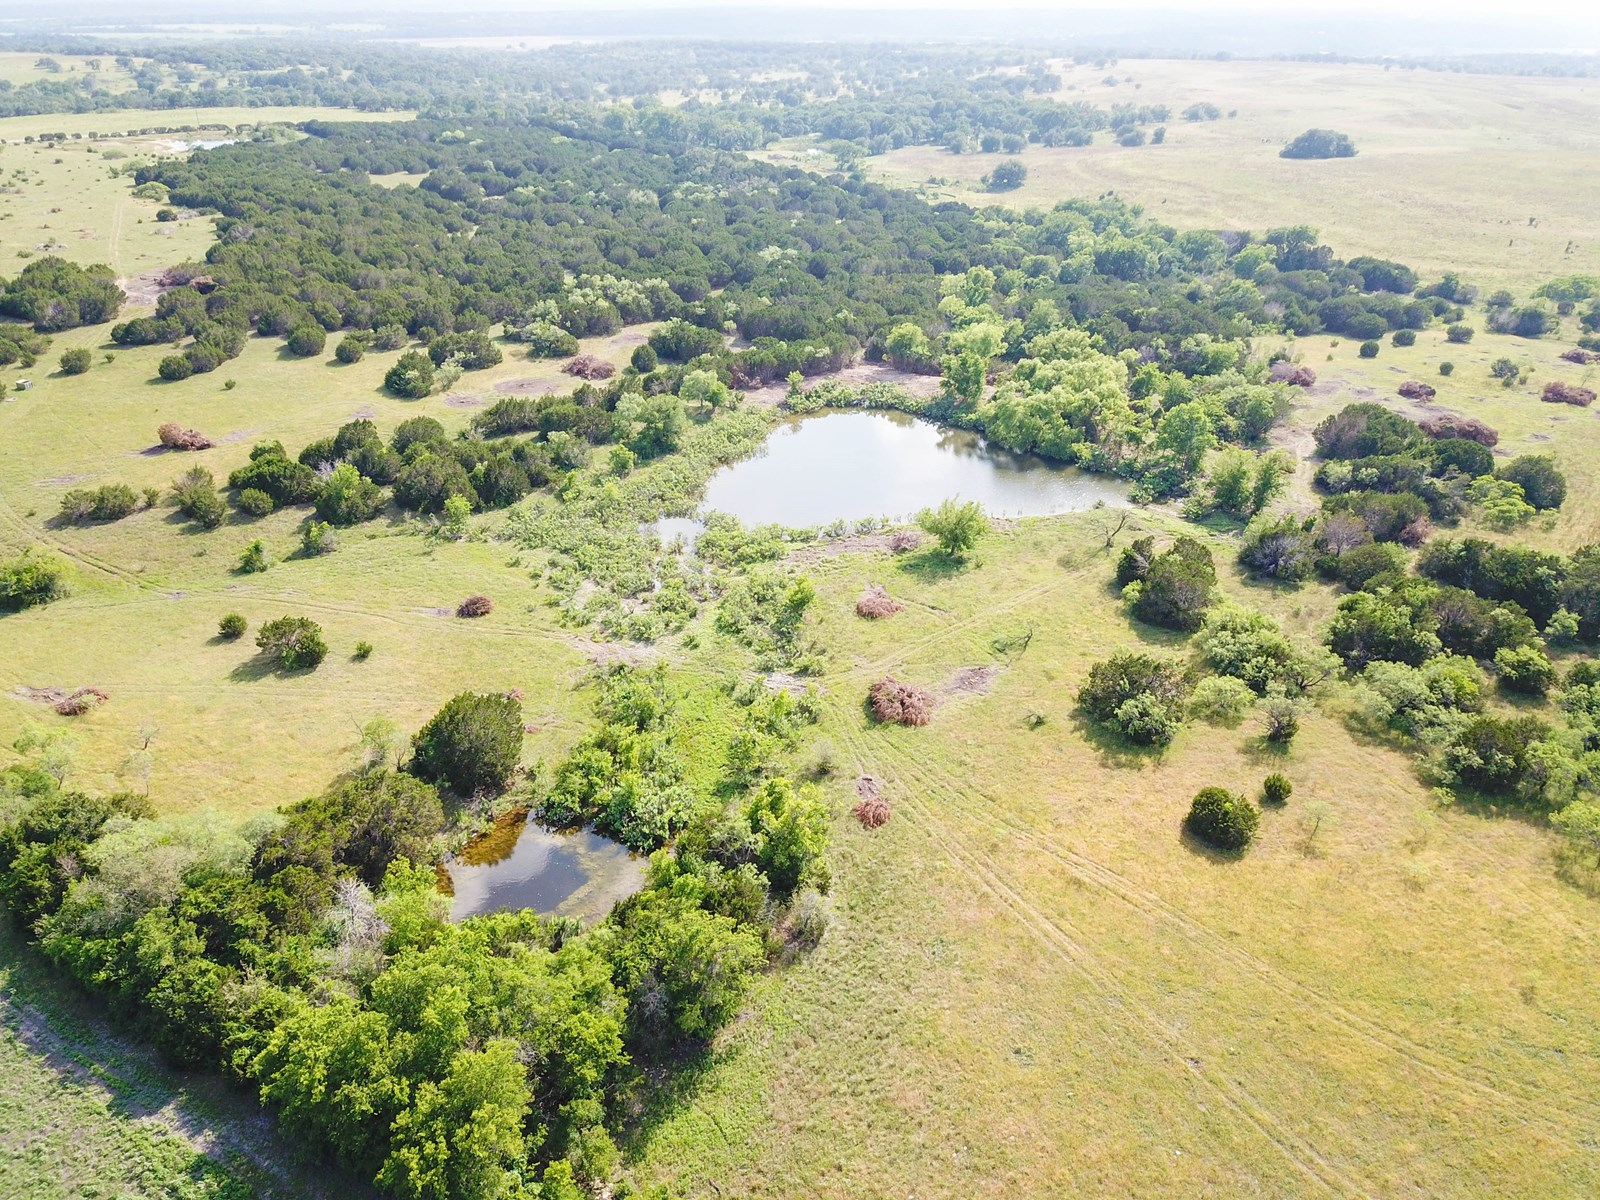 Ranch for Sale in Texas - 392.8 Acres In Hamilton County